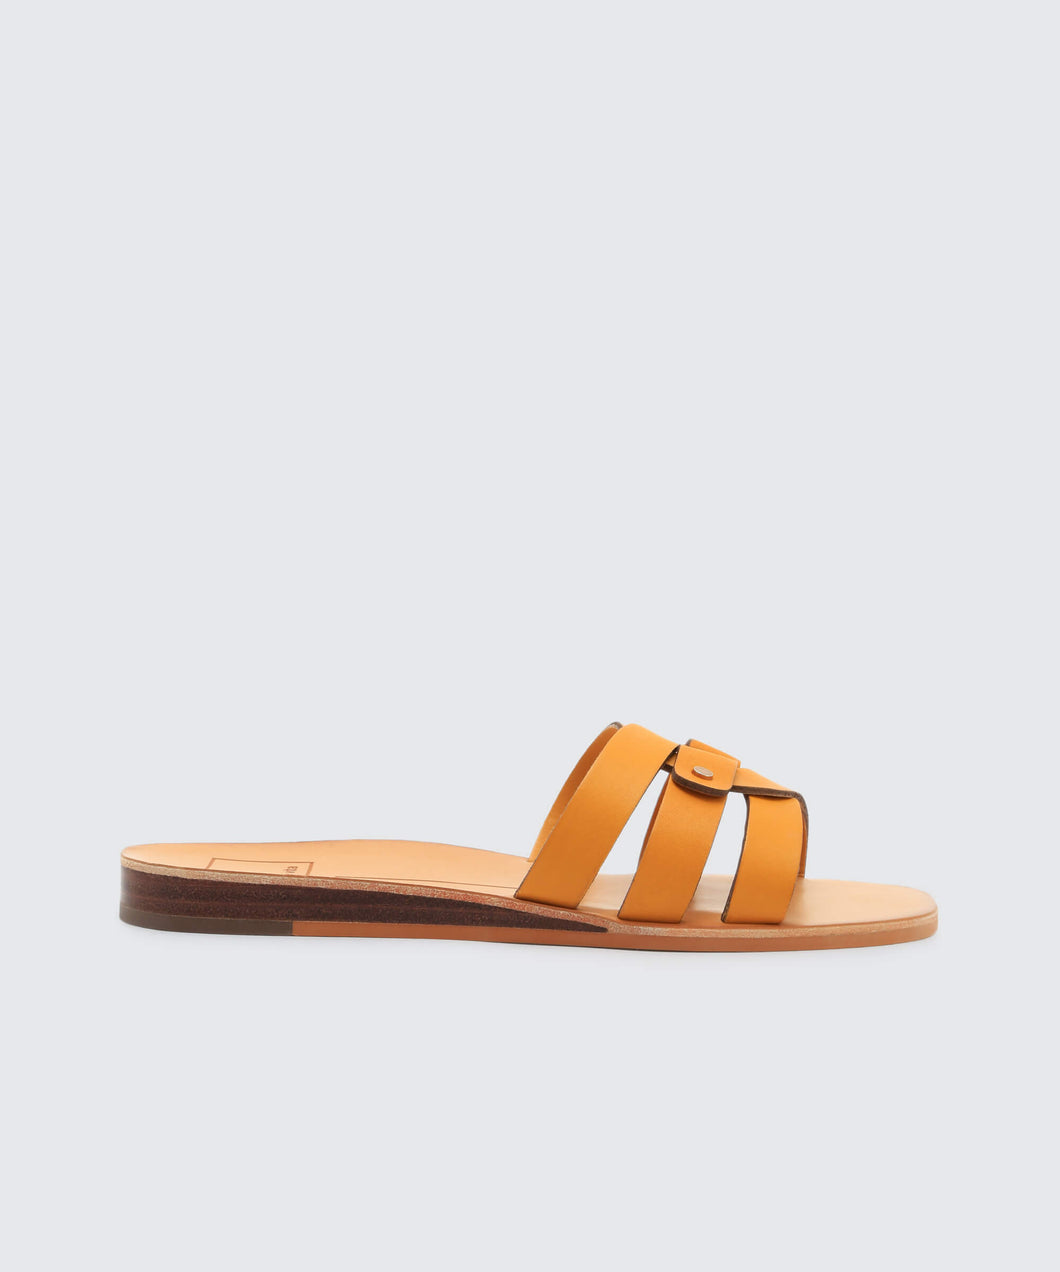 CAIT SANDALS IN HONEY -   Dolce Vita